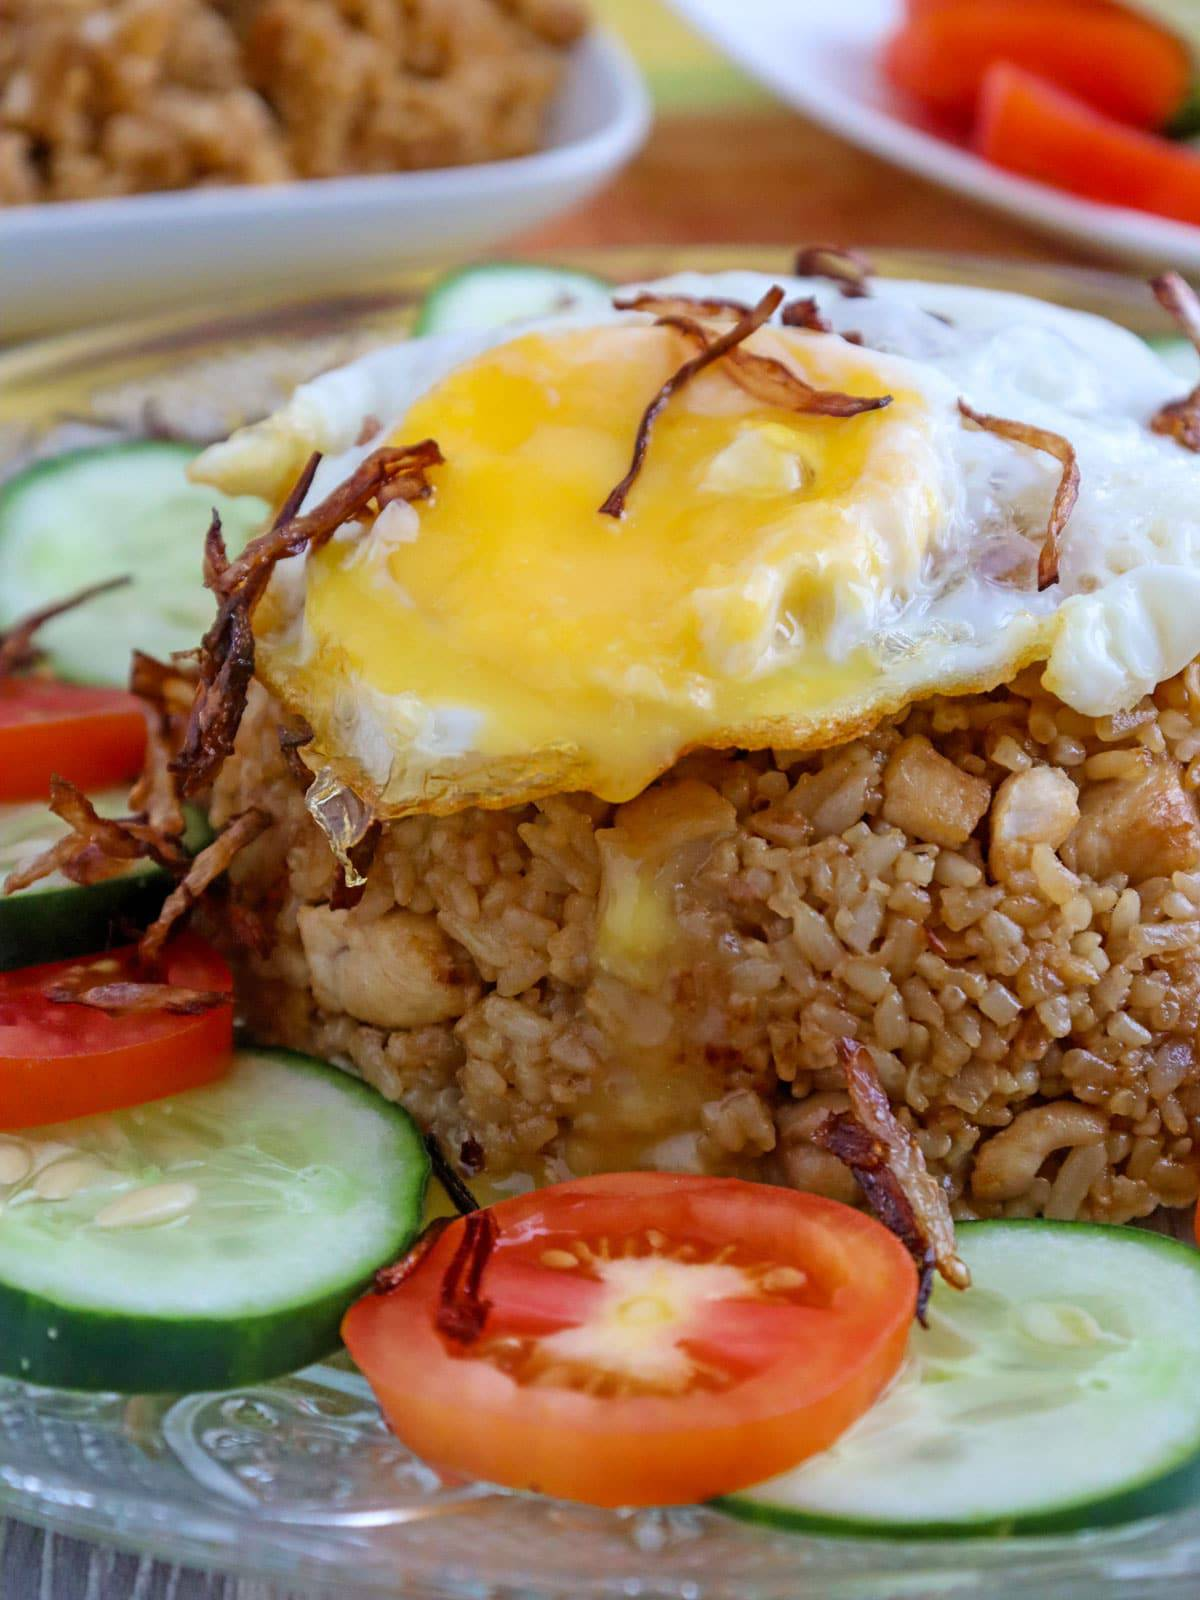 Indonesian fried rice topped with fried egg and garnished with sliced tomatoes and cucumber on a serving plate